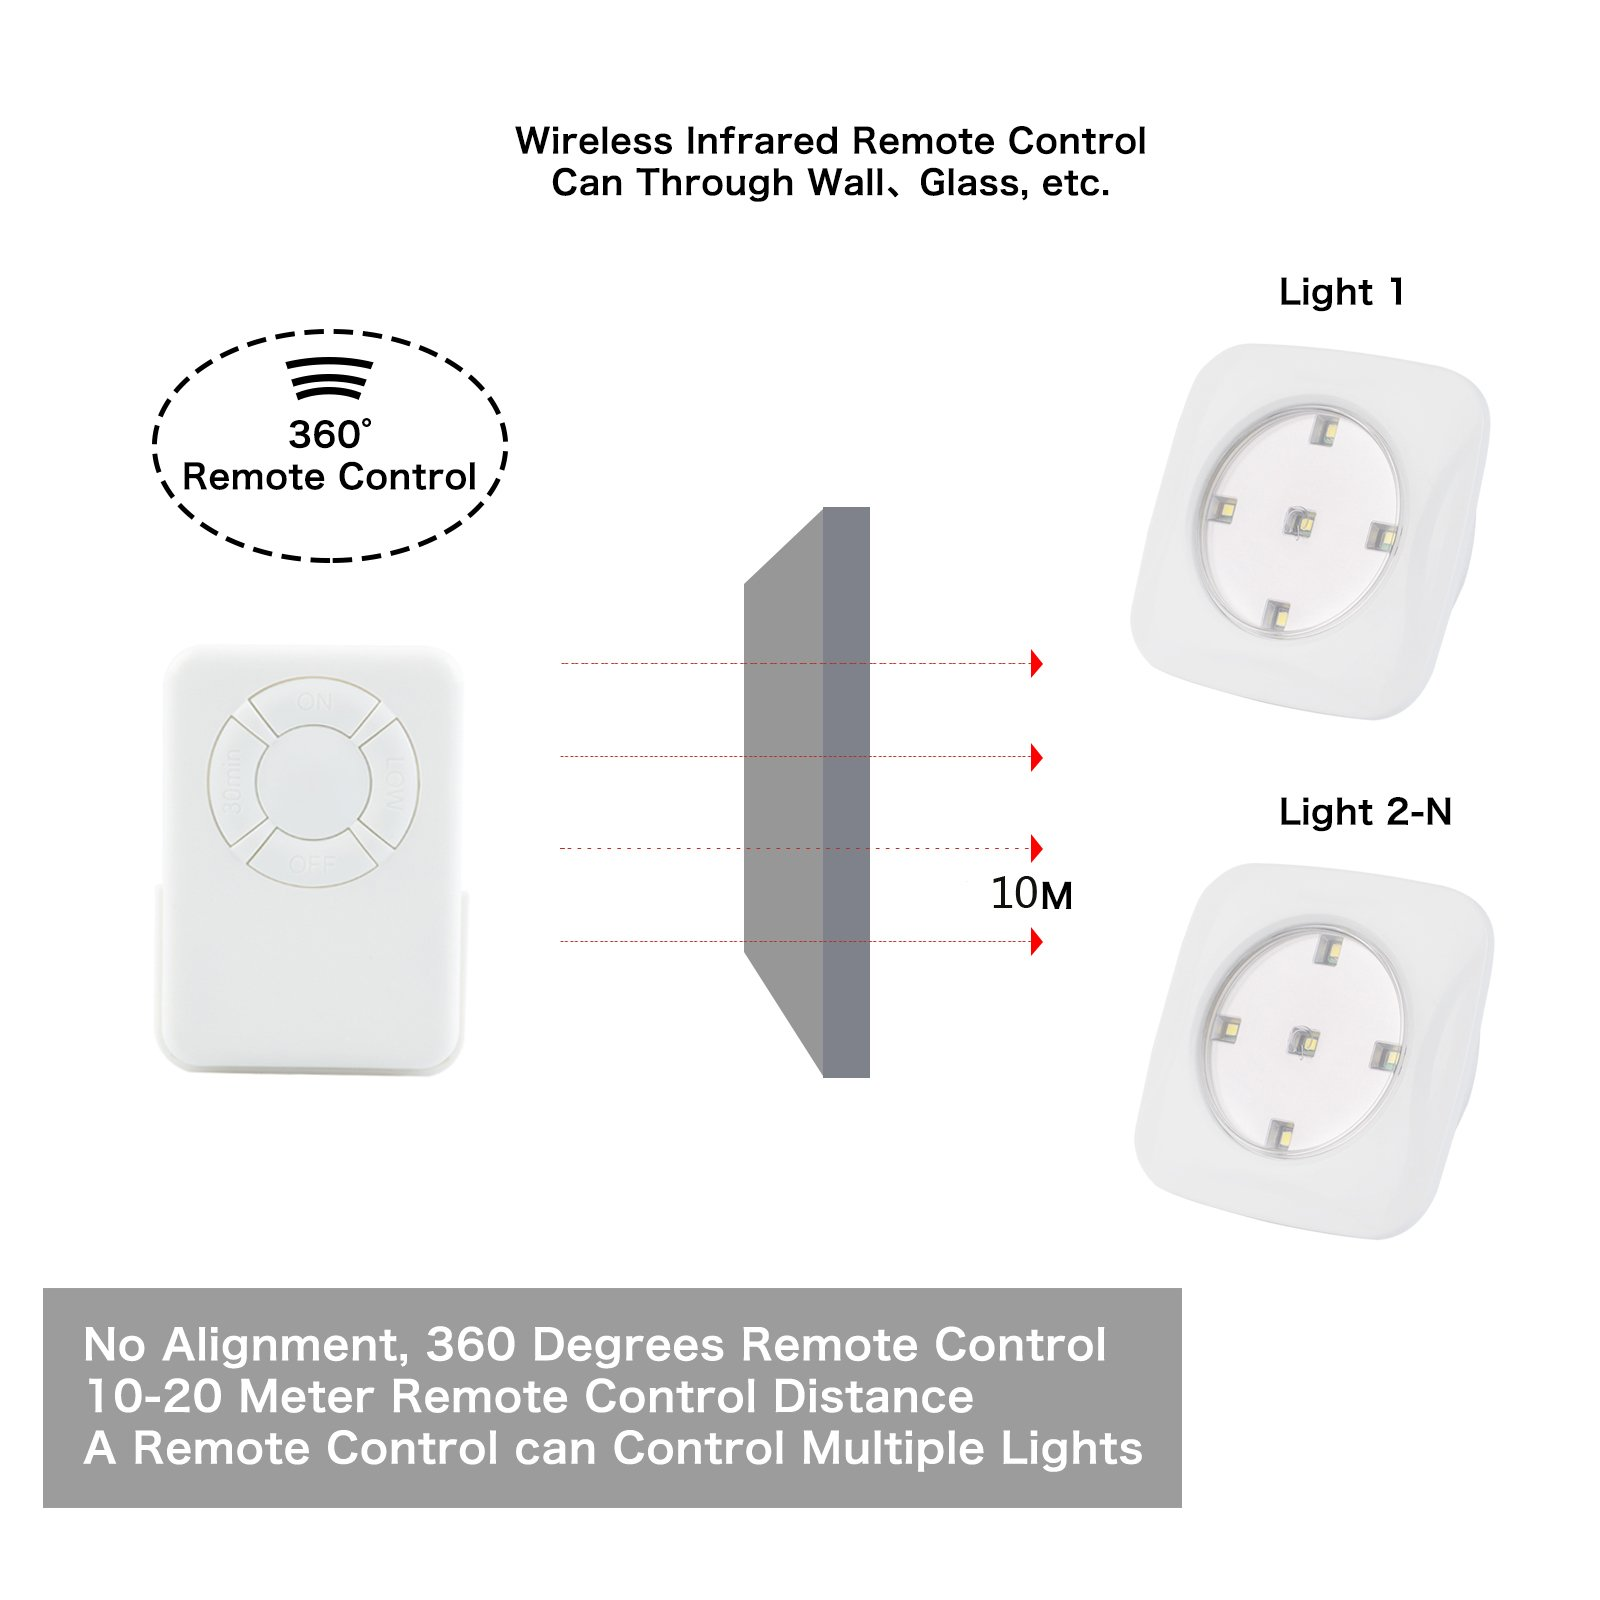 3 Pack Tap Light,5 LED Battery-powered Wireless NightLight Remote Control,Goldmore Touch Lights Stick-on Push Light for Closets,Cabinets,Kitchen,Utility Rooms,Pantries,Hallway,Garage-White by goldmore (Image #4)